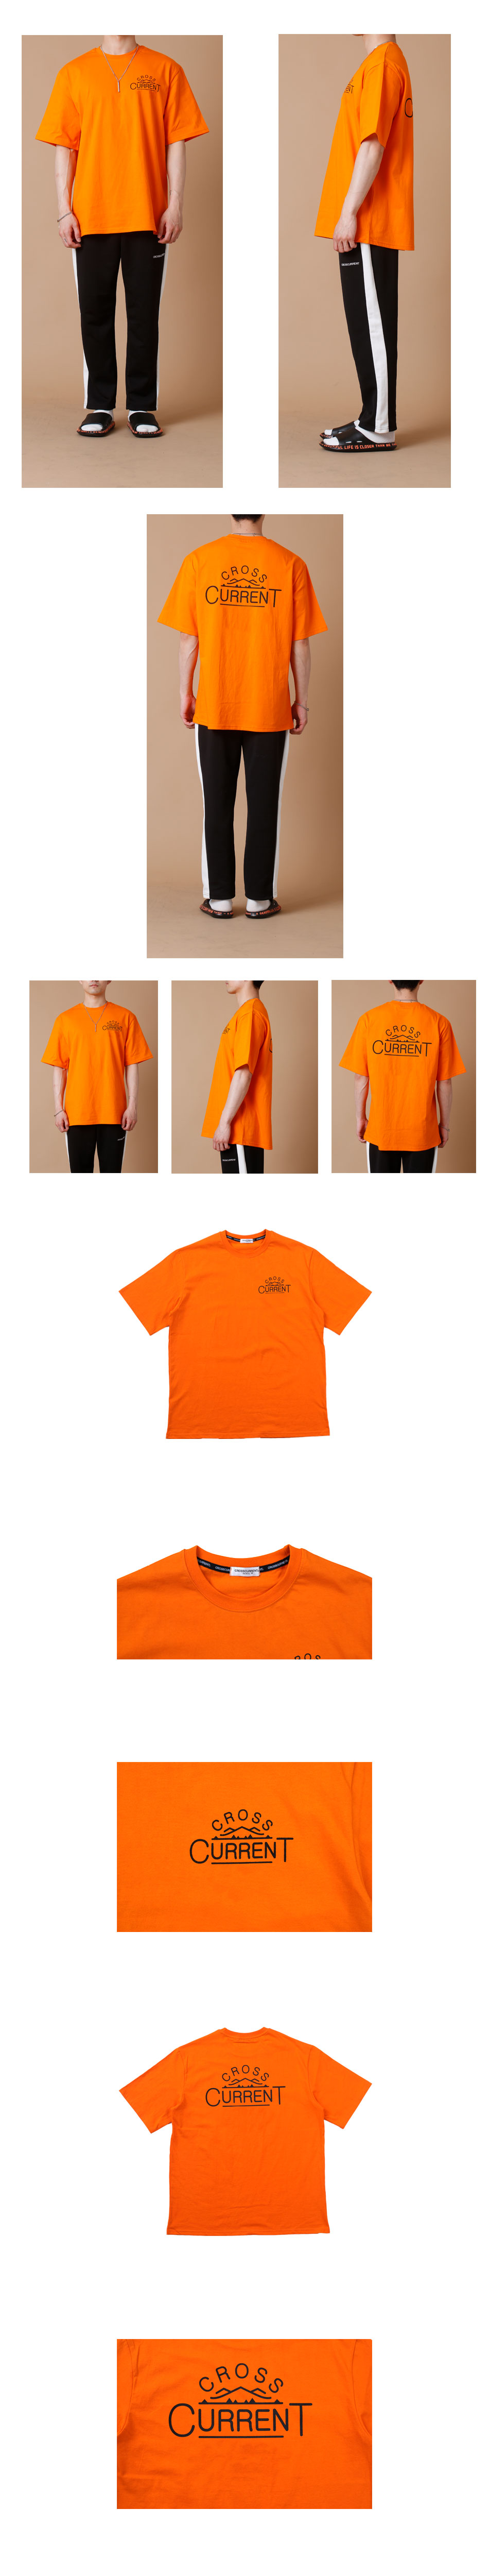 #crct00001-CCT-Mountain-Short-Sleeve-오렌지950.jpg